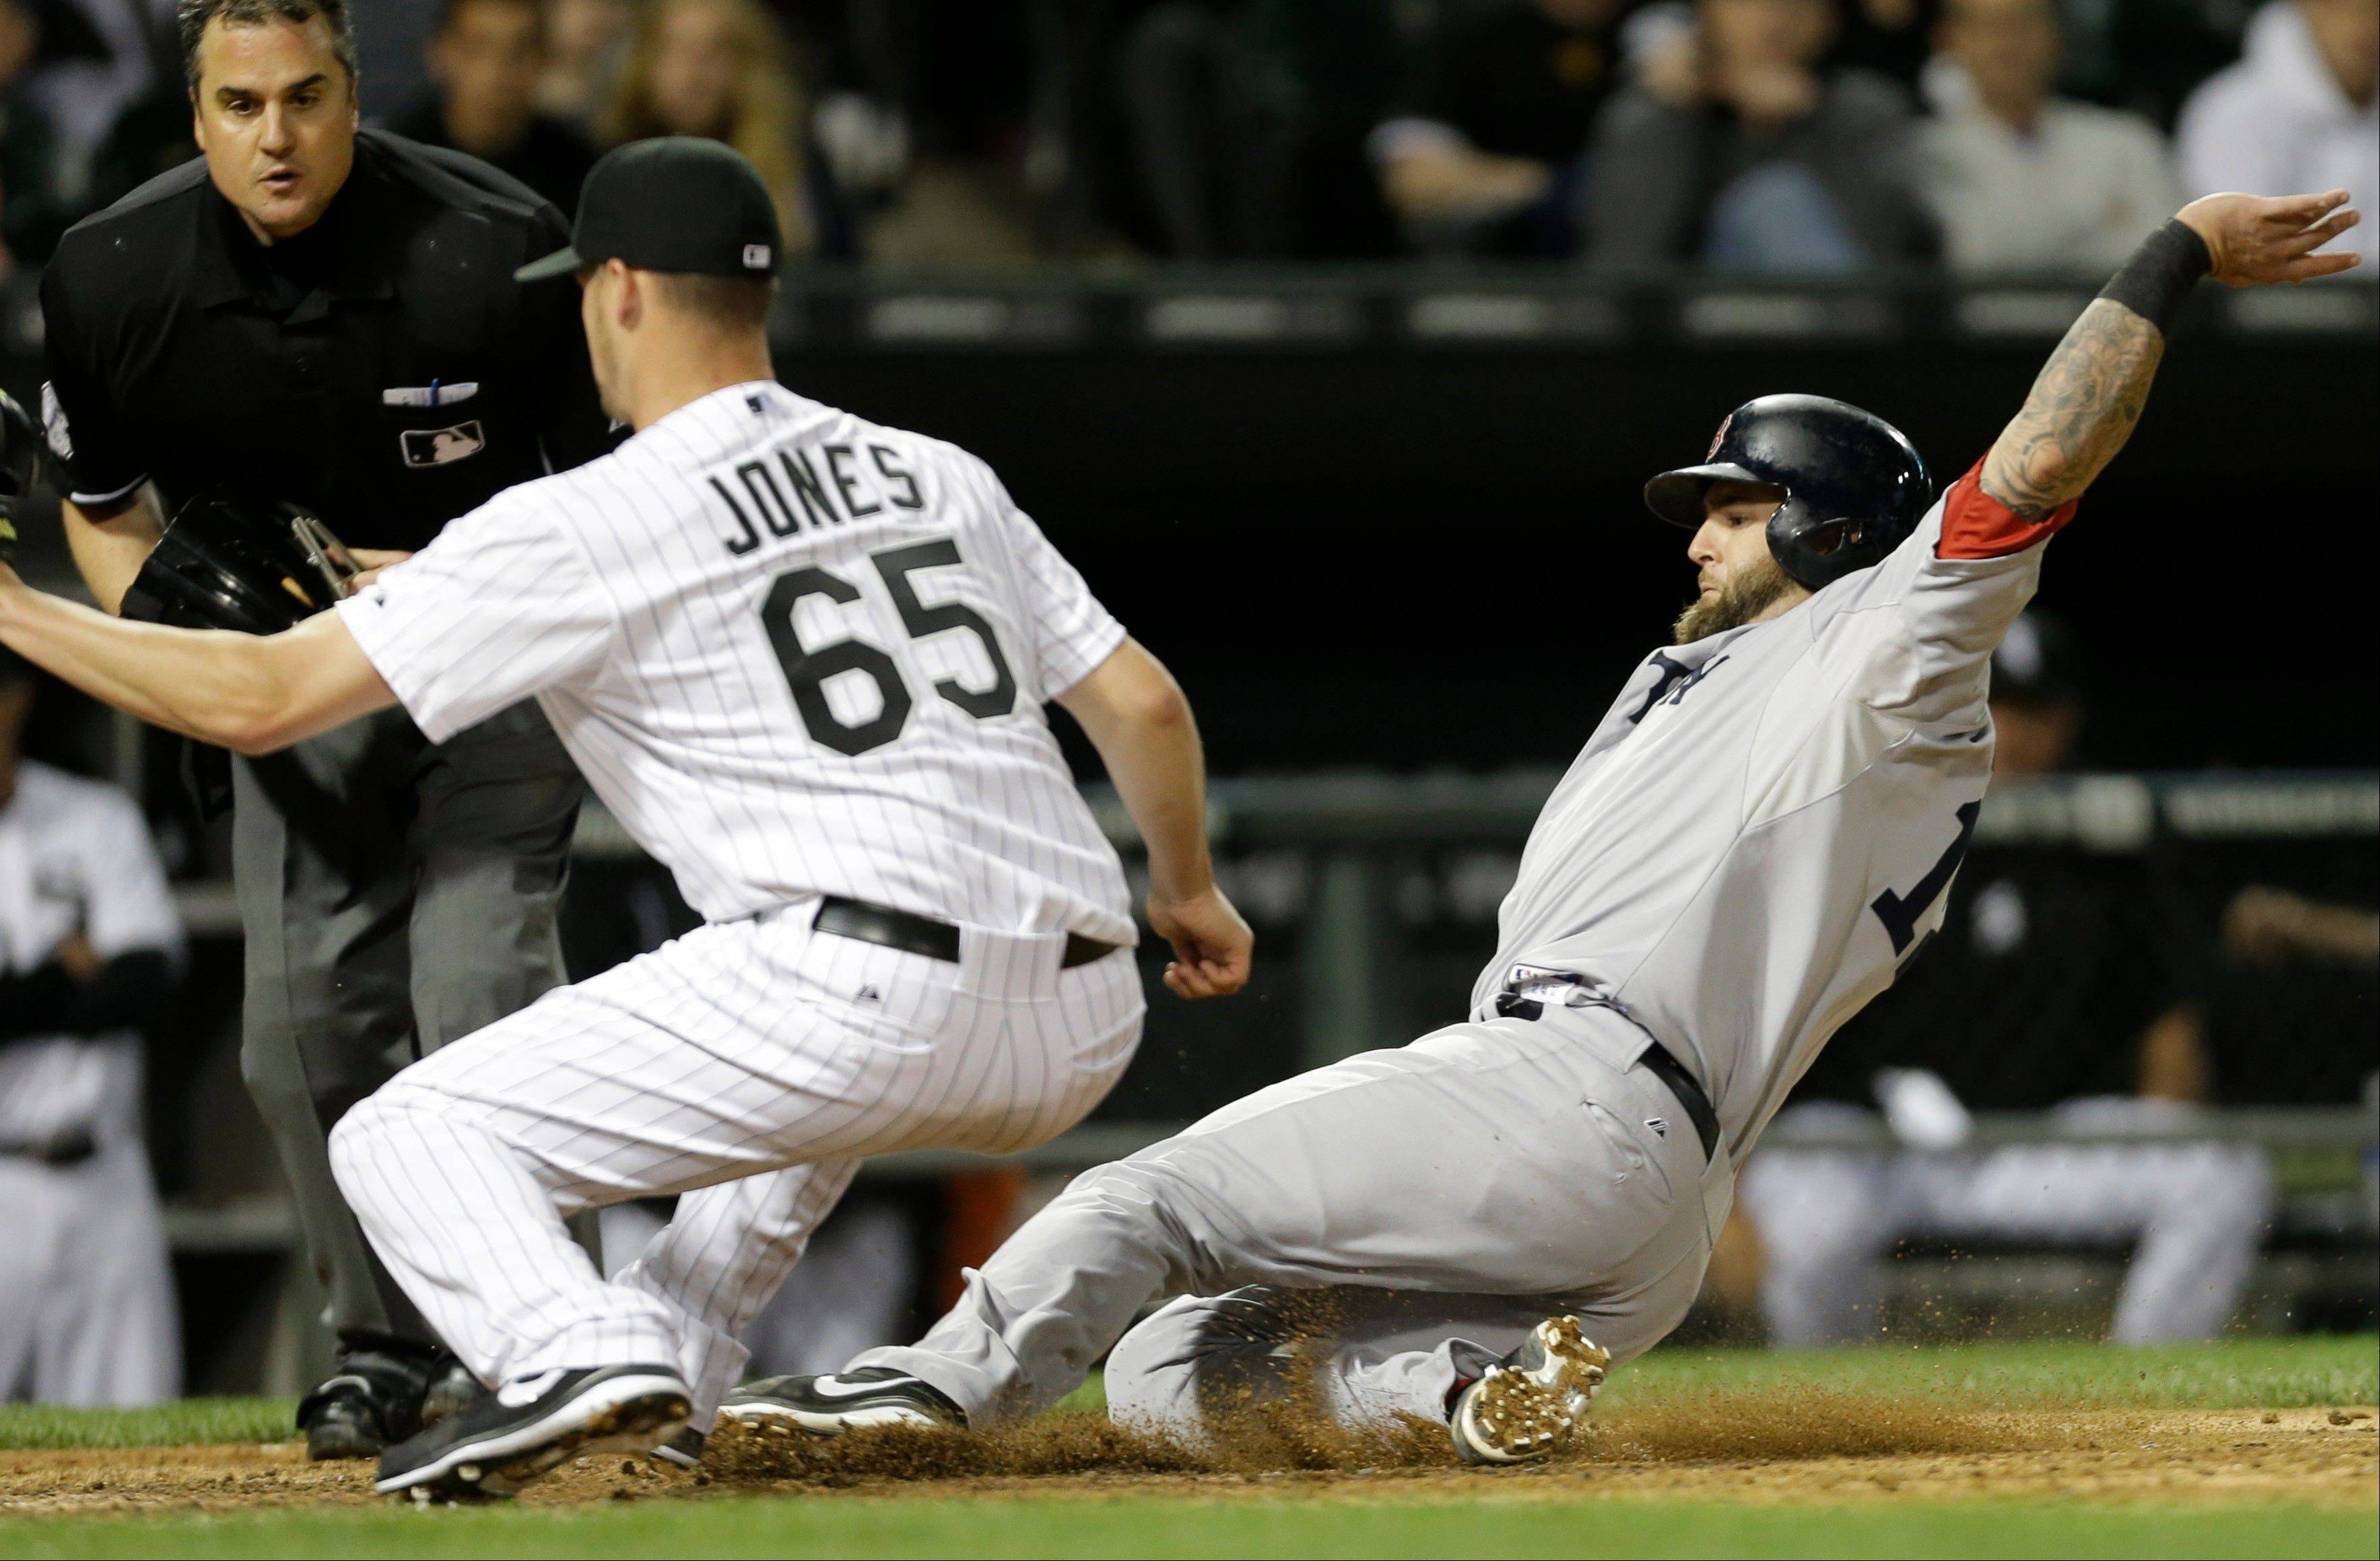 Boston Red Sox's Mike Napoli, right, scores after a passed ball as Chicago White Sox relief pitcher Nate Jones (65) waits for the ball during the eighth inning of a baseball game in Chicago, Wednesday, May 22, 2013.